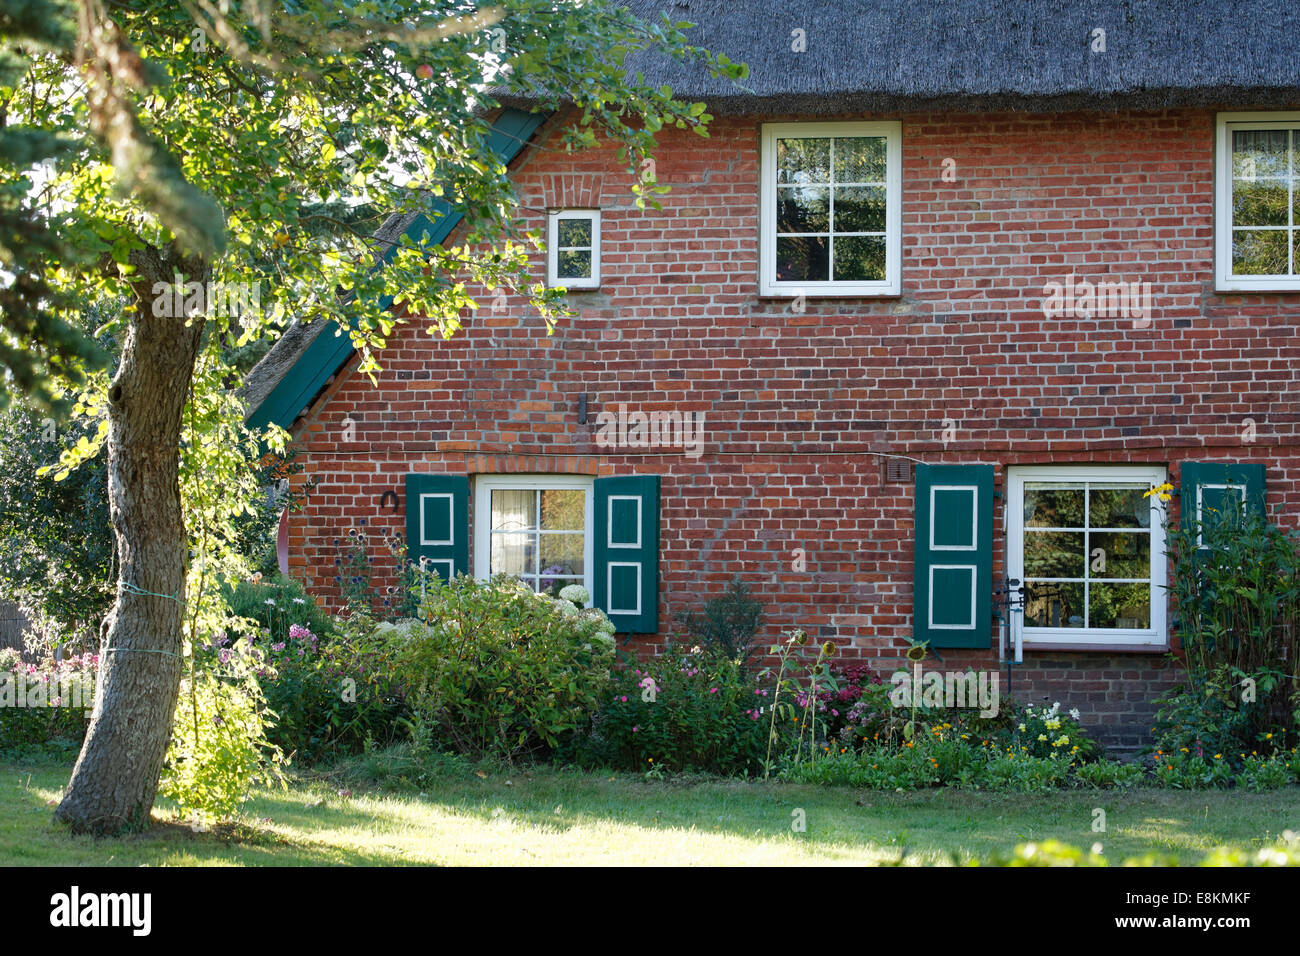 brick house germany stockfotos brick house germany bilder alamy. Black Bedroom Furniture Sets. Home Design Ideas